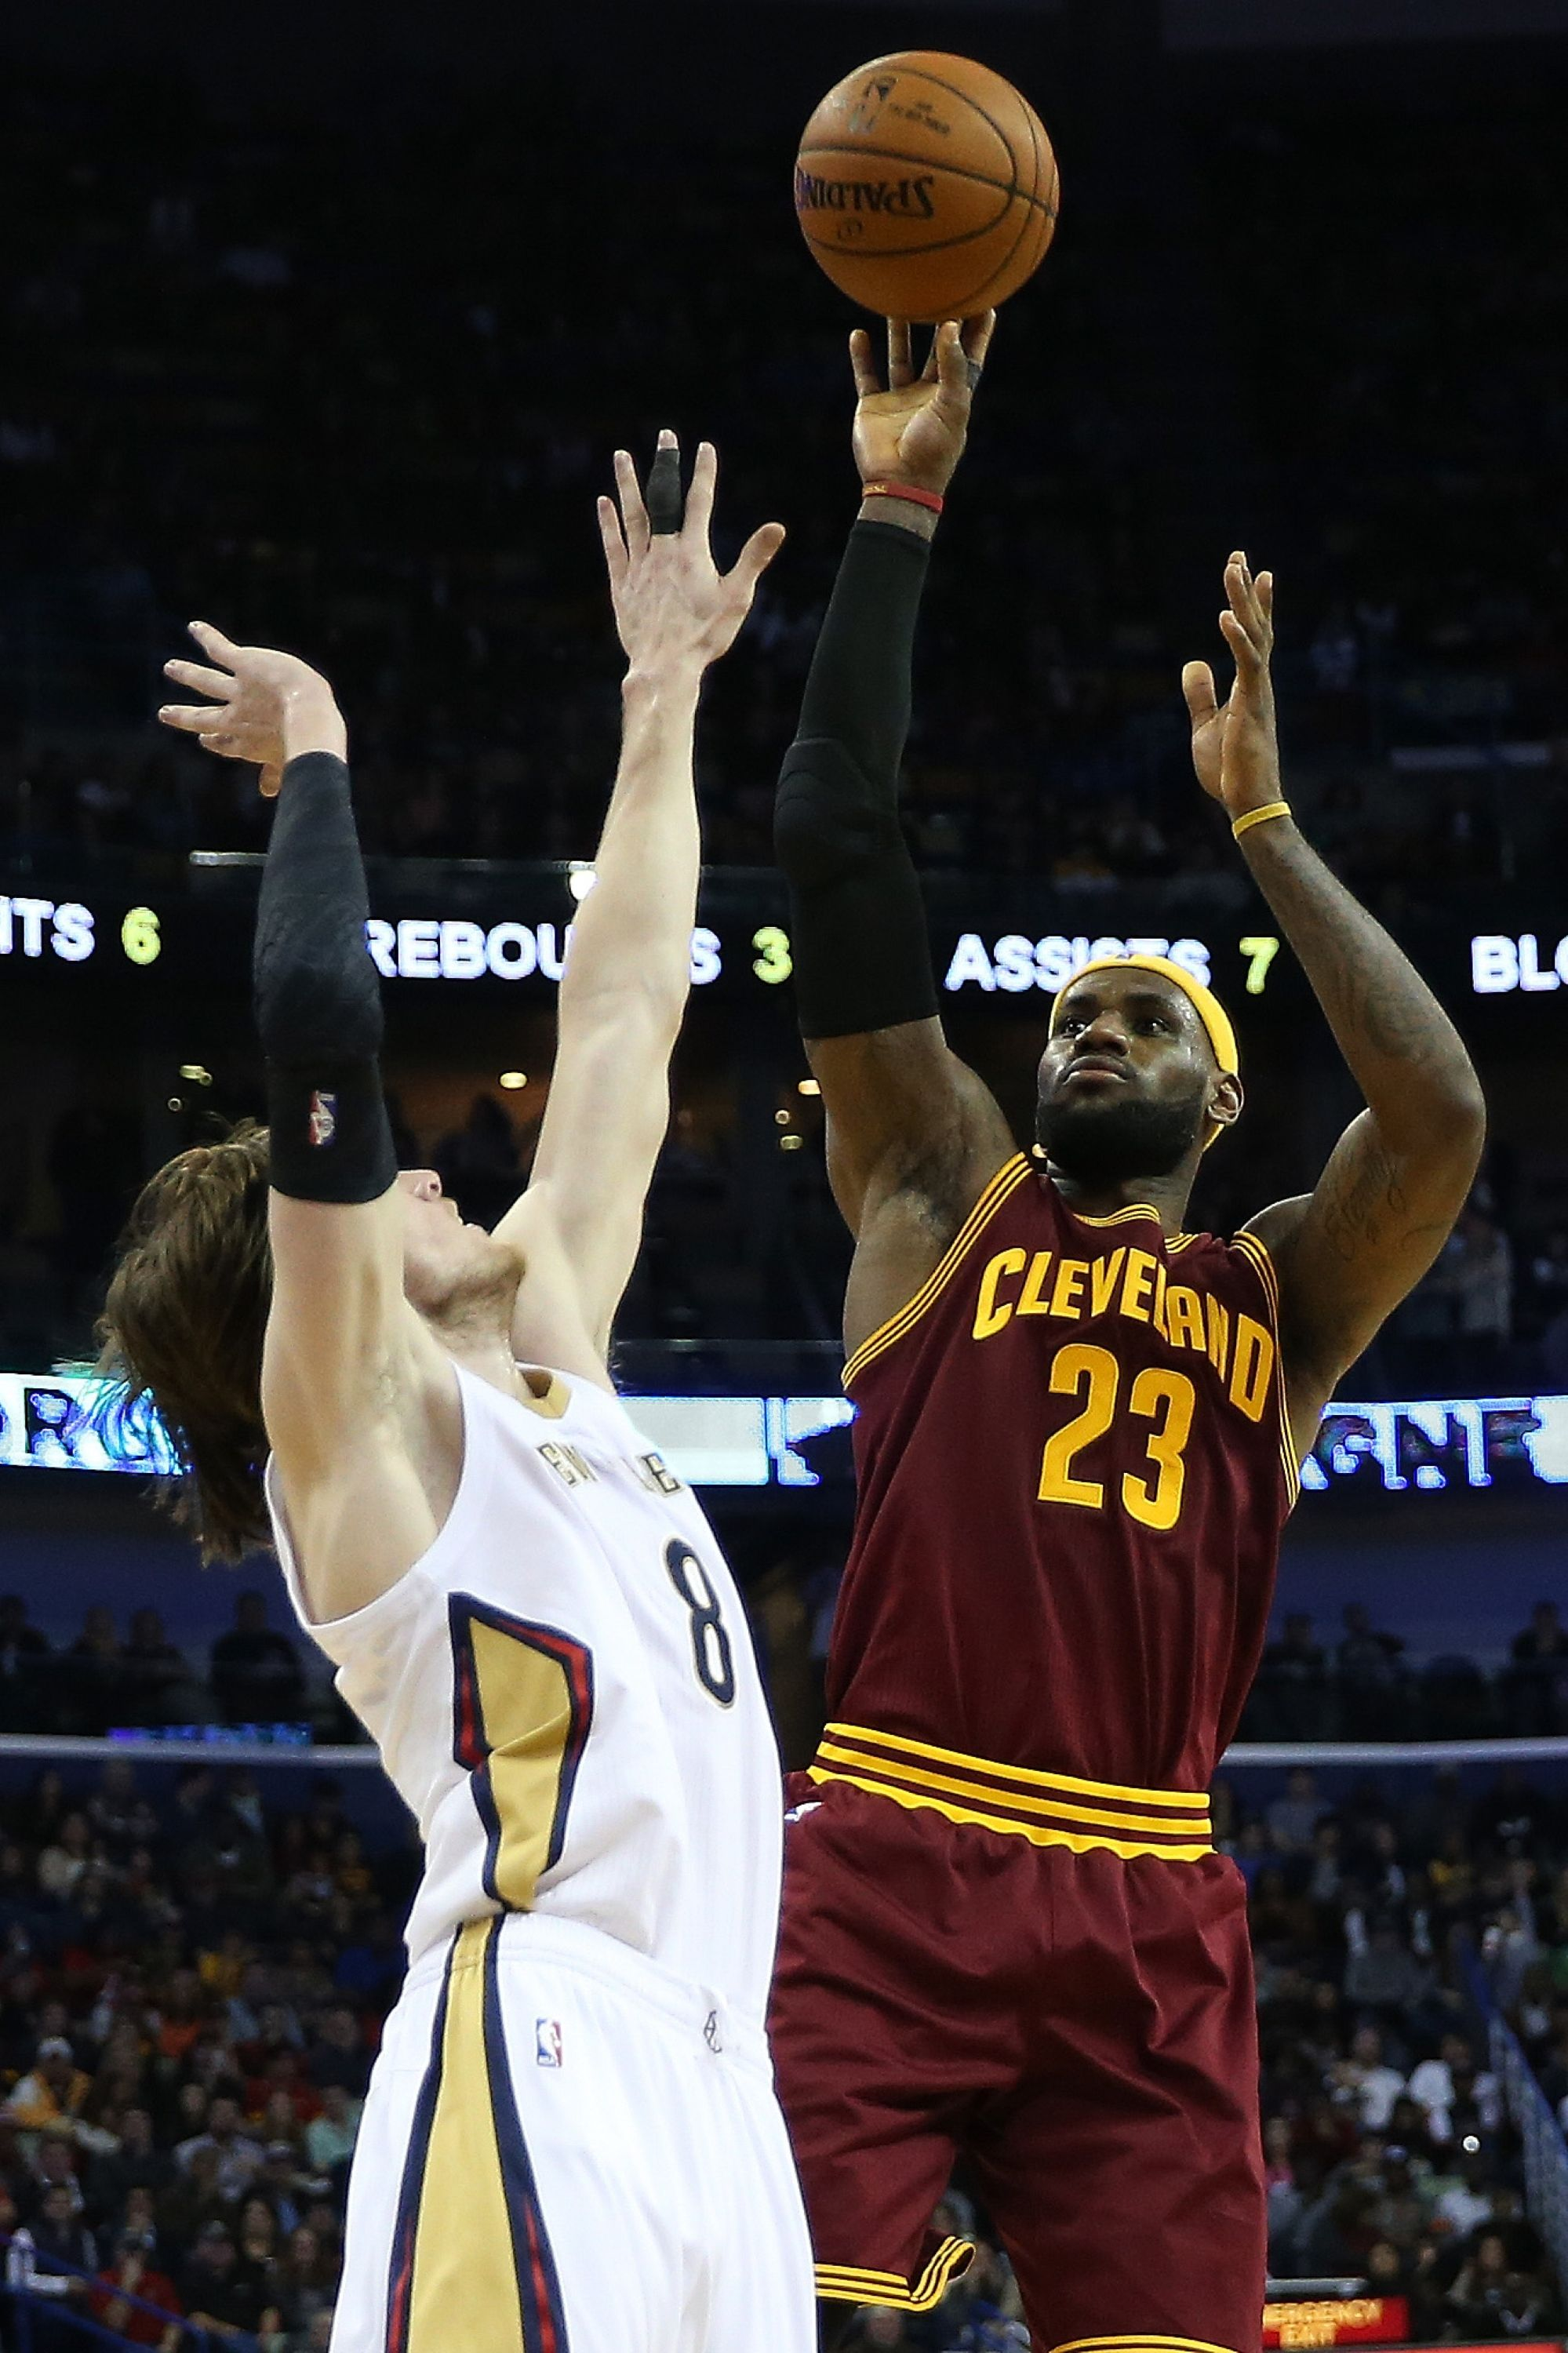 LeBron James #23 of the Cleveland Cavaliers shoots the ball over Luke Babbitt #8 of the New Orleans Pelicans at Smoothie King Center on December 12, 2014 in New Orleans, Louisiana.